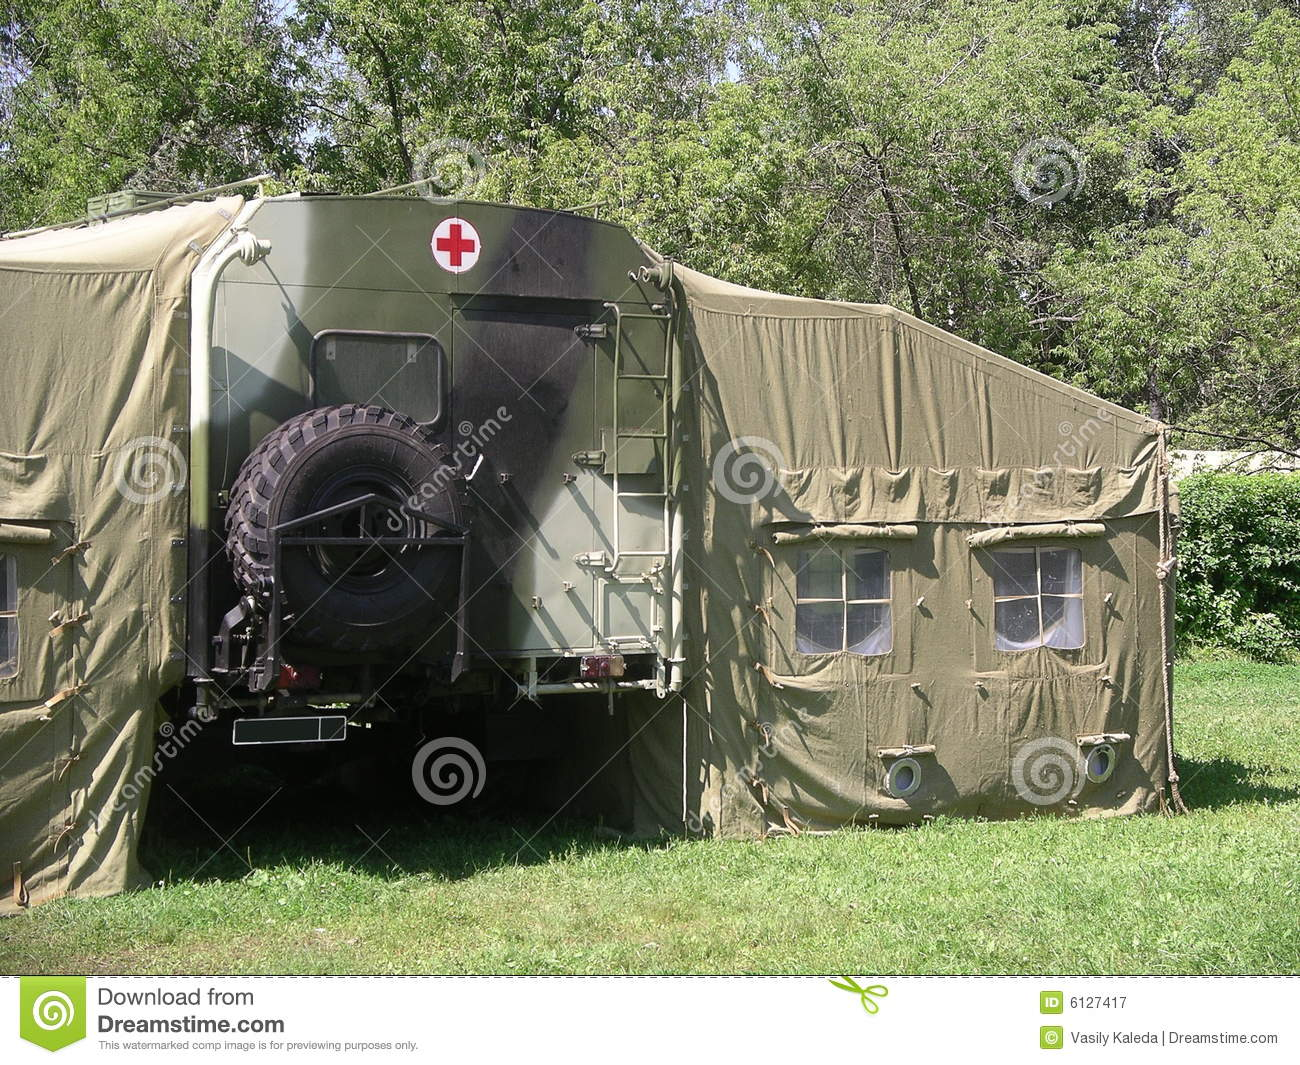 Russian Military Hospital & Russian Military Hospital stock image. Image of casualty - 6127417